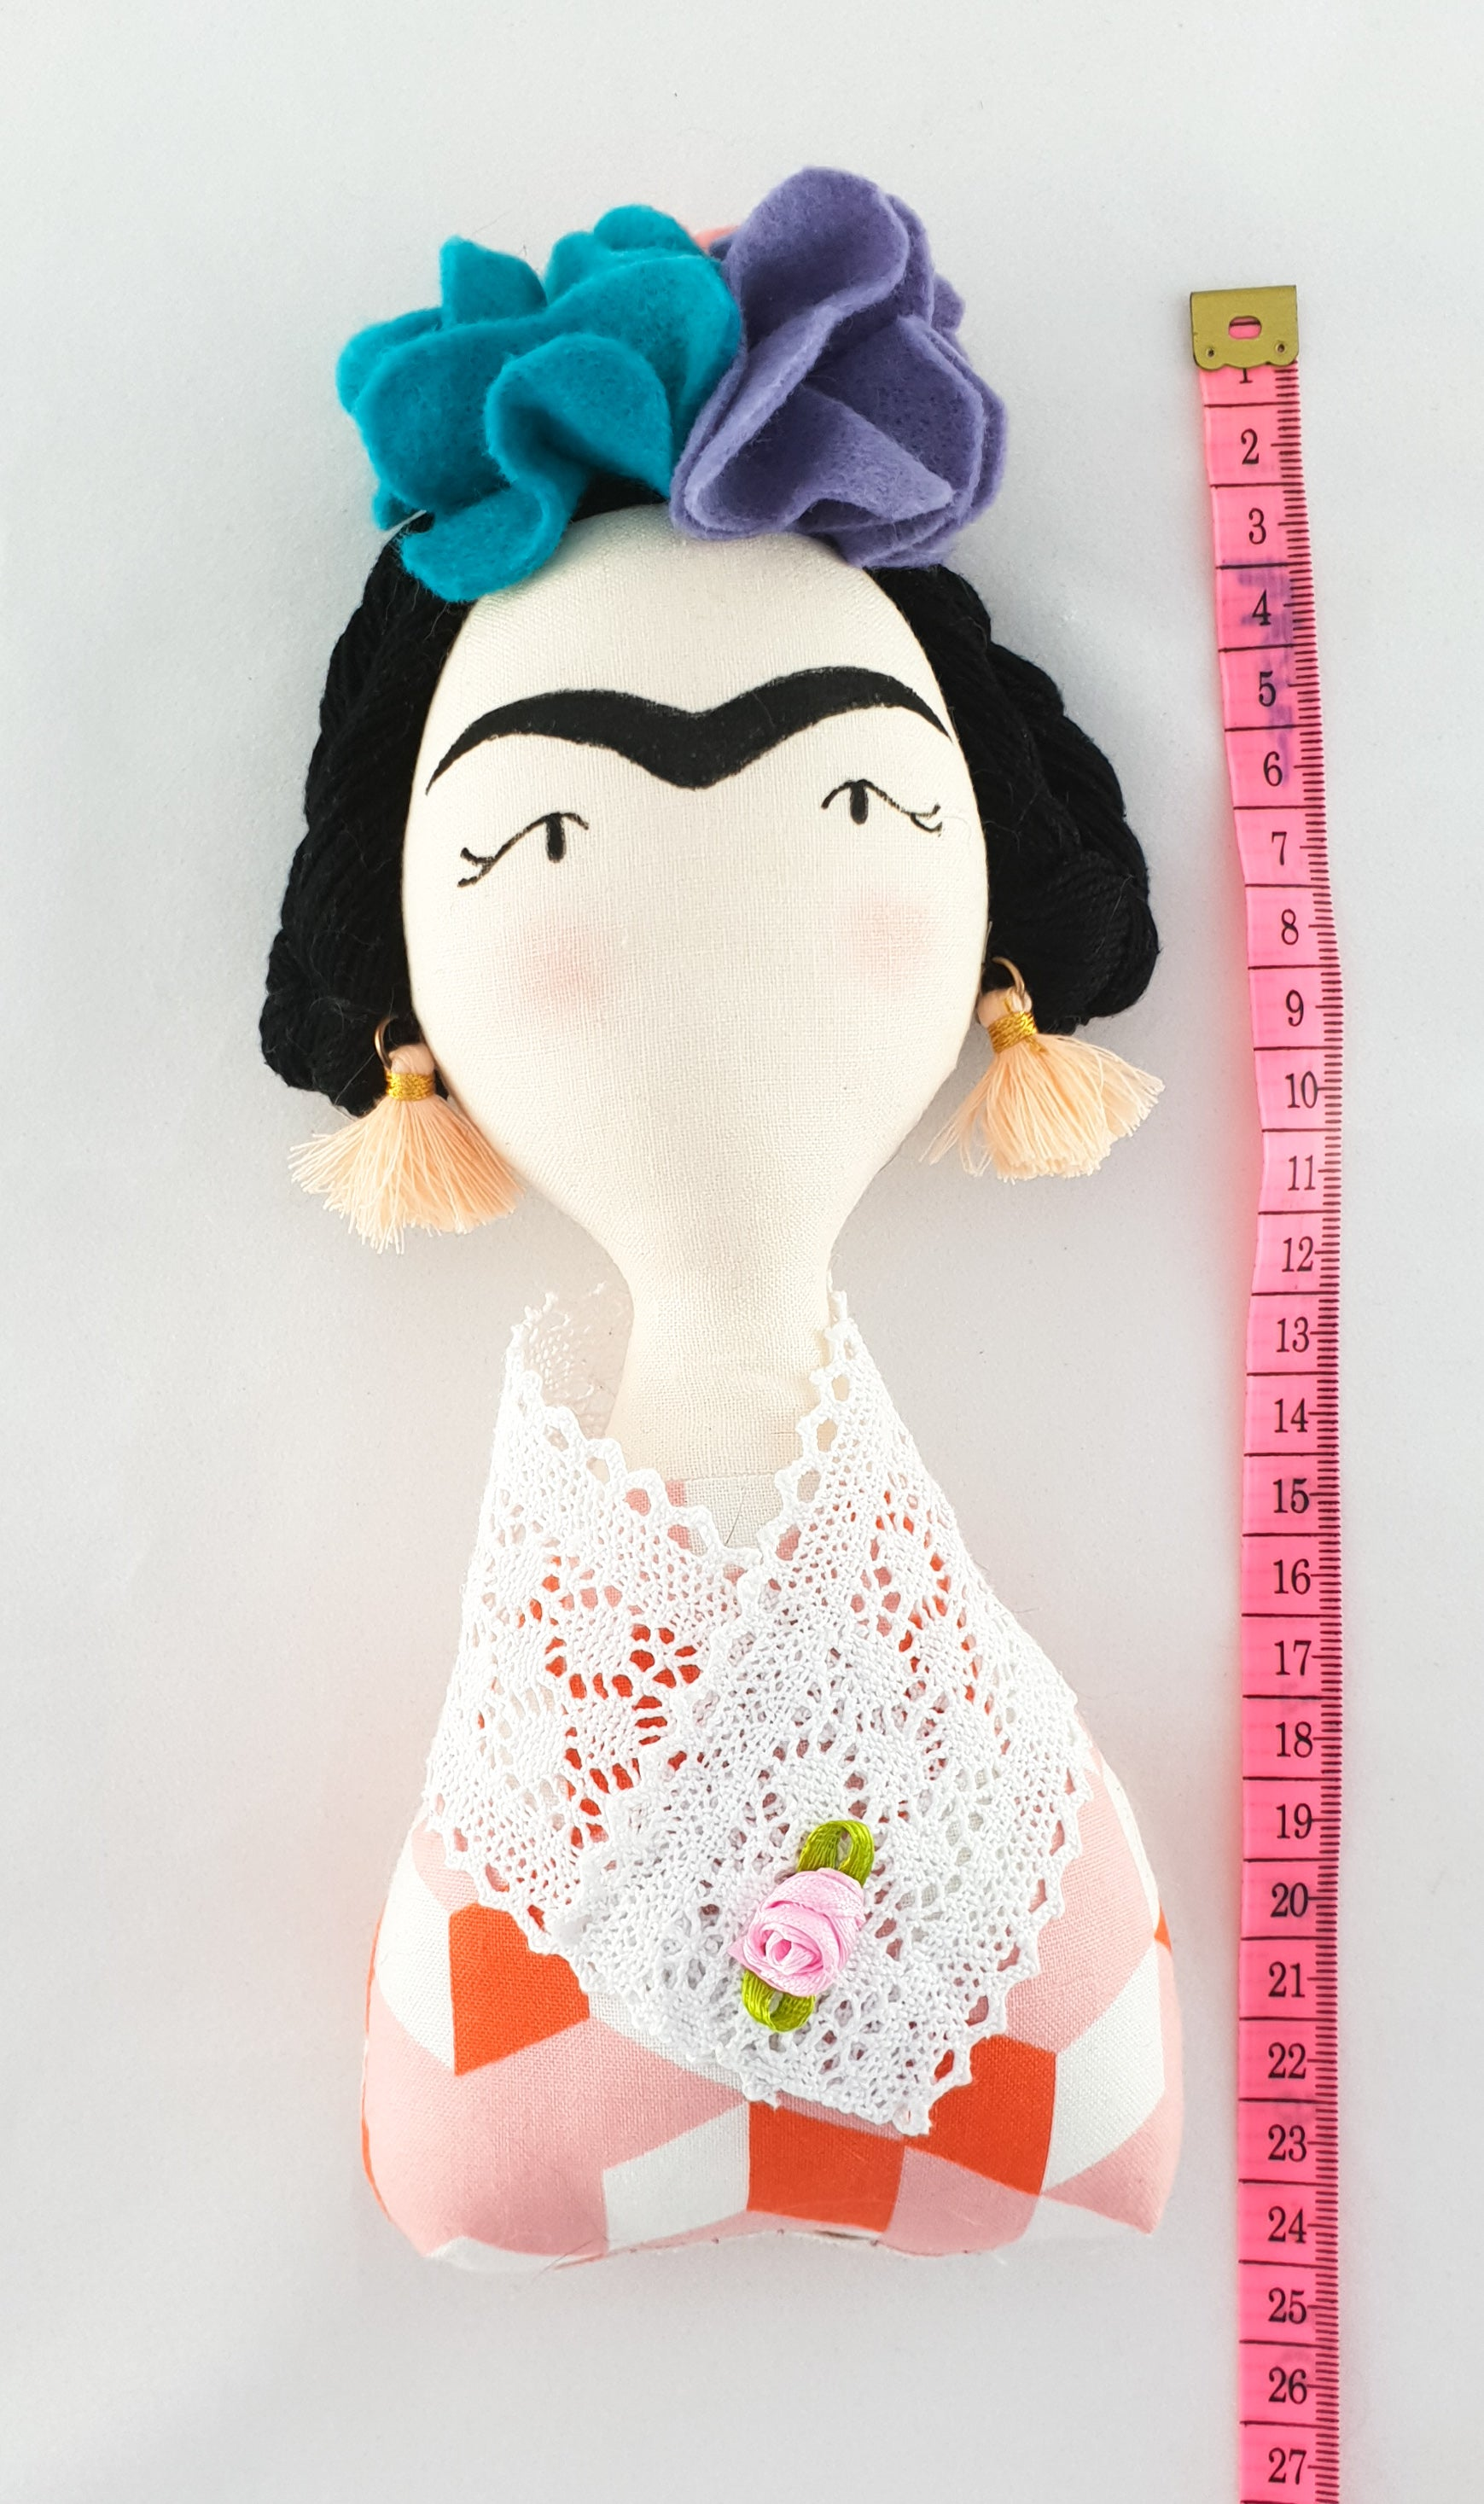 Frida Kahlo doll - soft fabric doll - cloth doll